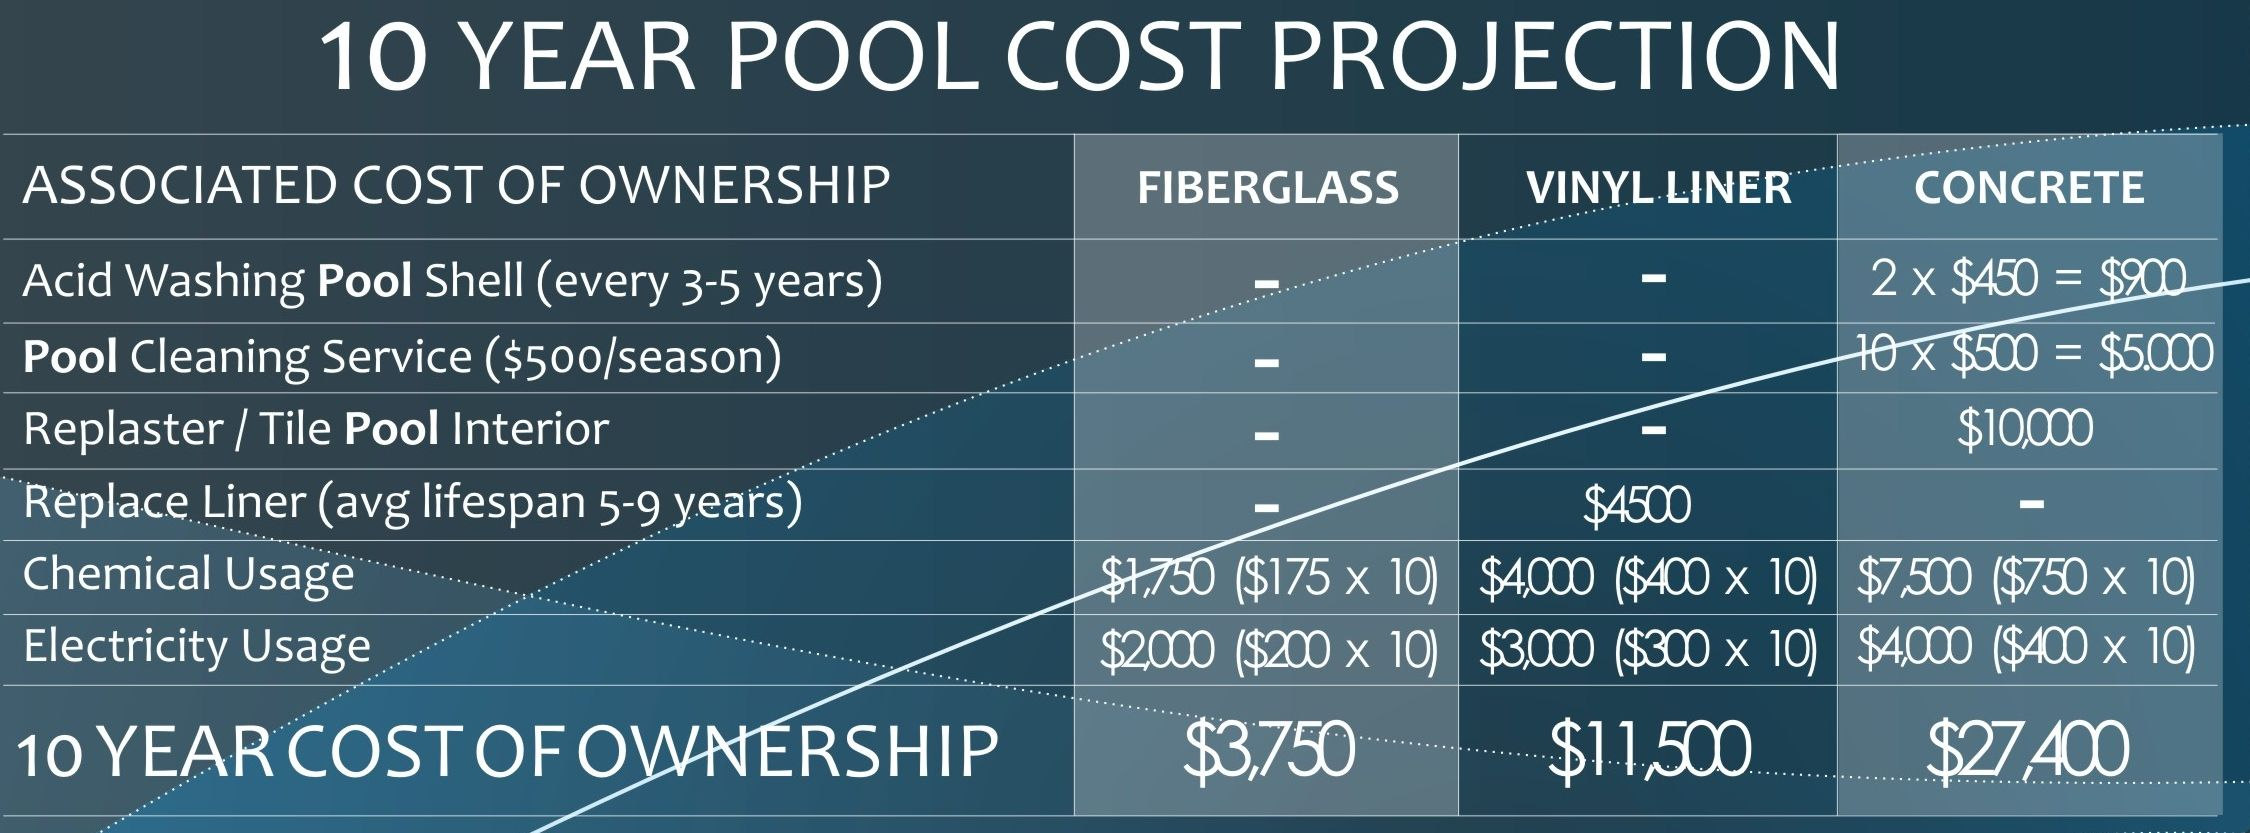 Fiberglass pool vs concrete pool vs vinyl liner pool Fibreglass pools vs concrete pools